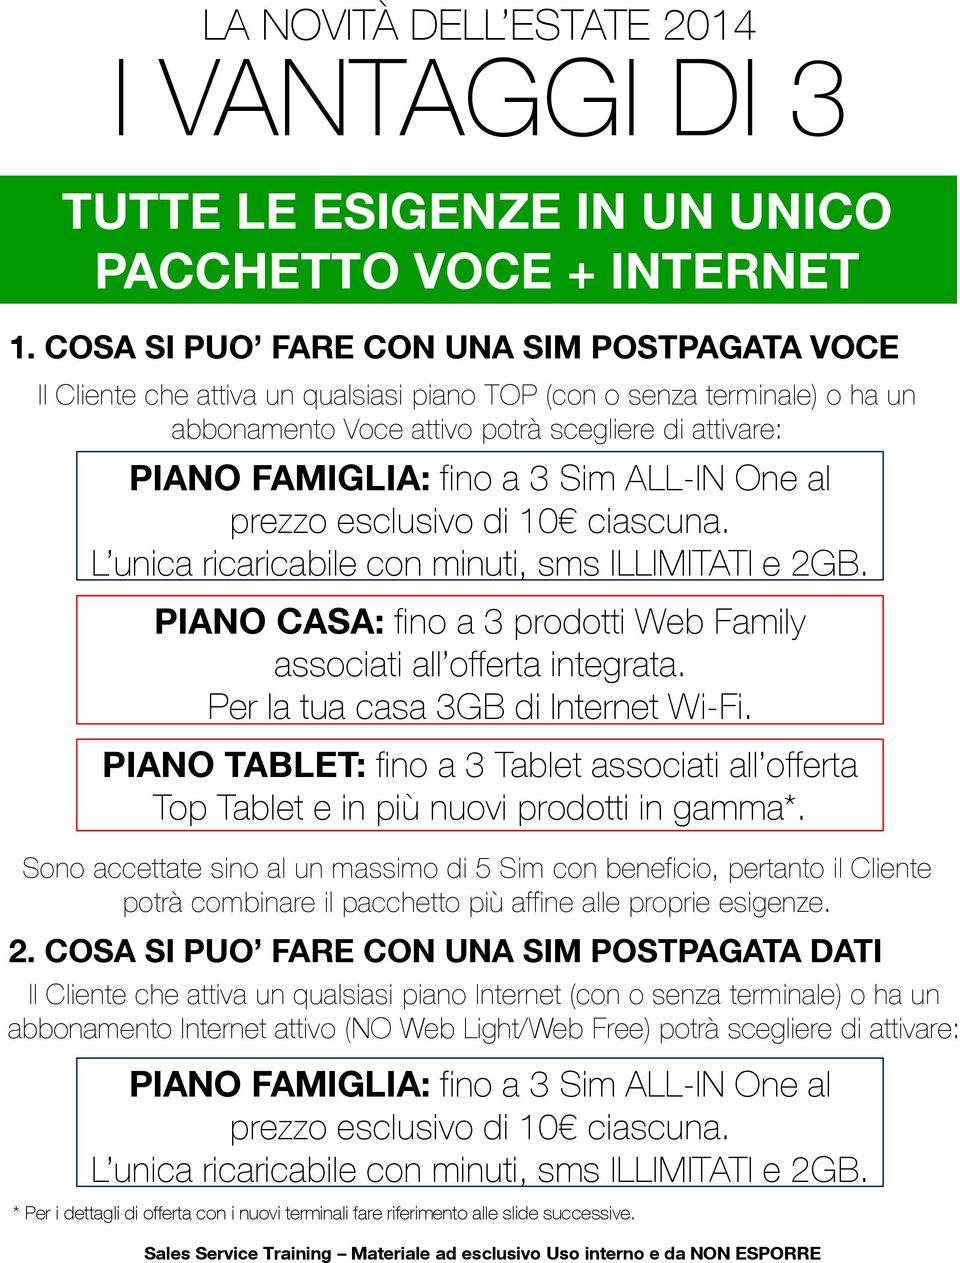 Sim ALL-IN One al prezzo esclusivo di 10 ciascuna. L unica ricaricabile con minuti, sms e 2GB. PIANO CASA: fino a 3 prodotti Web Family associati all offerta integrata.